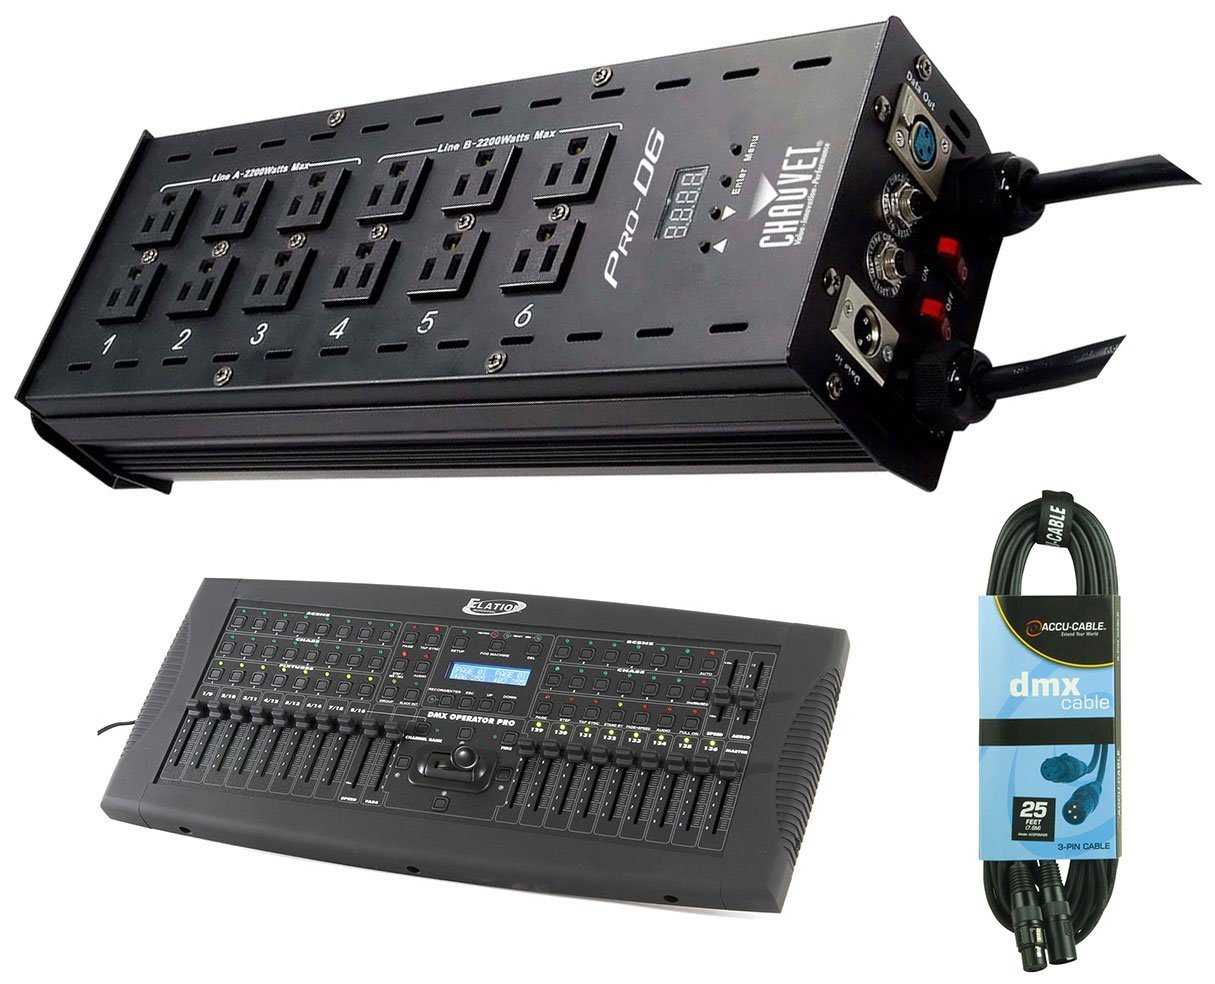 Cheap 12 Channel Dmx Dimmer Find Deals On Dmxprojectscom Dmx512 Lighting Projects Relay Schematic Get Quotations Chauvet Pro D6 6 Light Pack Operator Cable